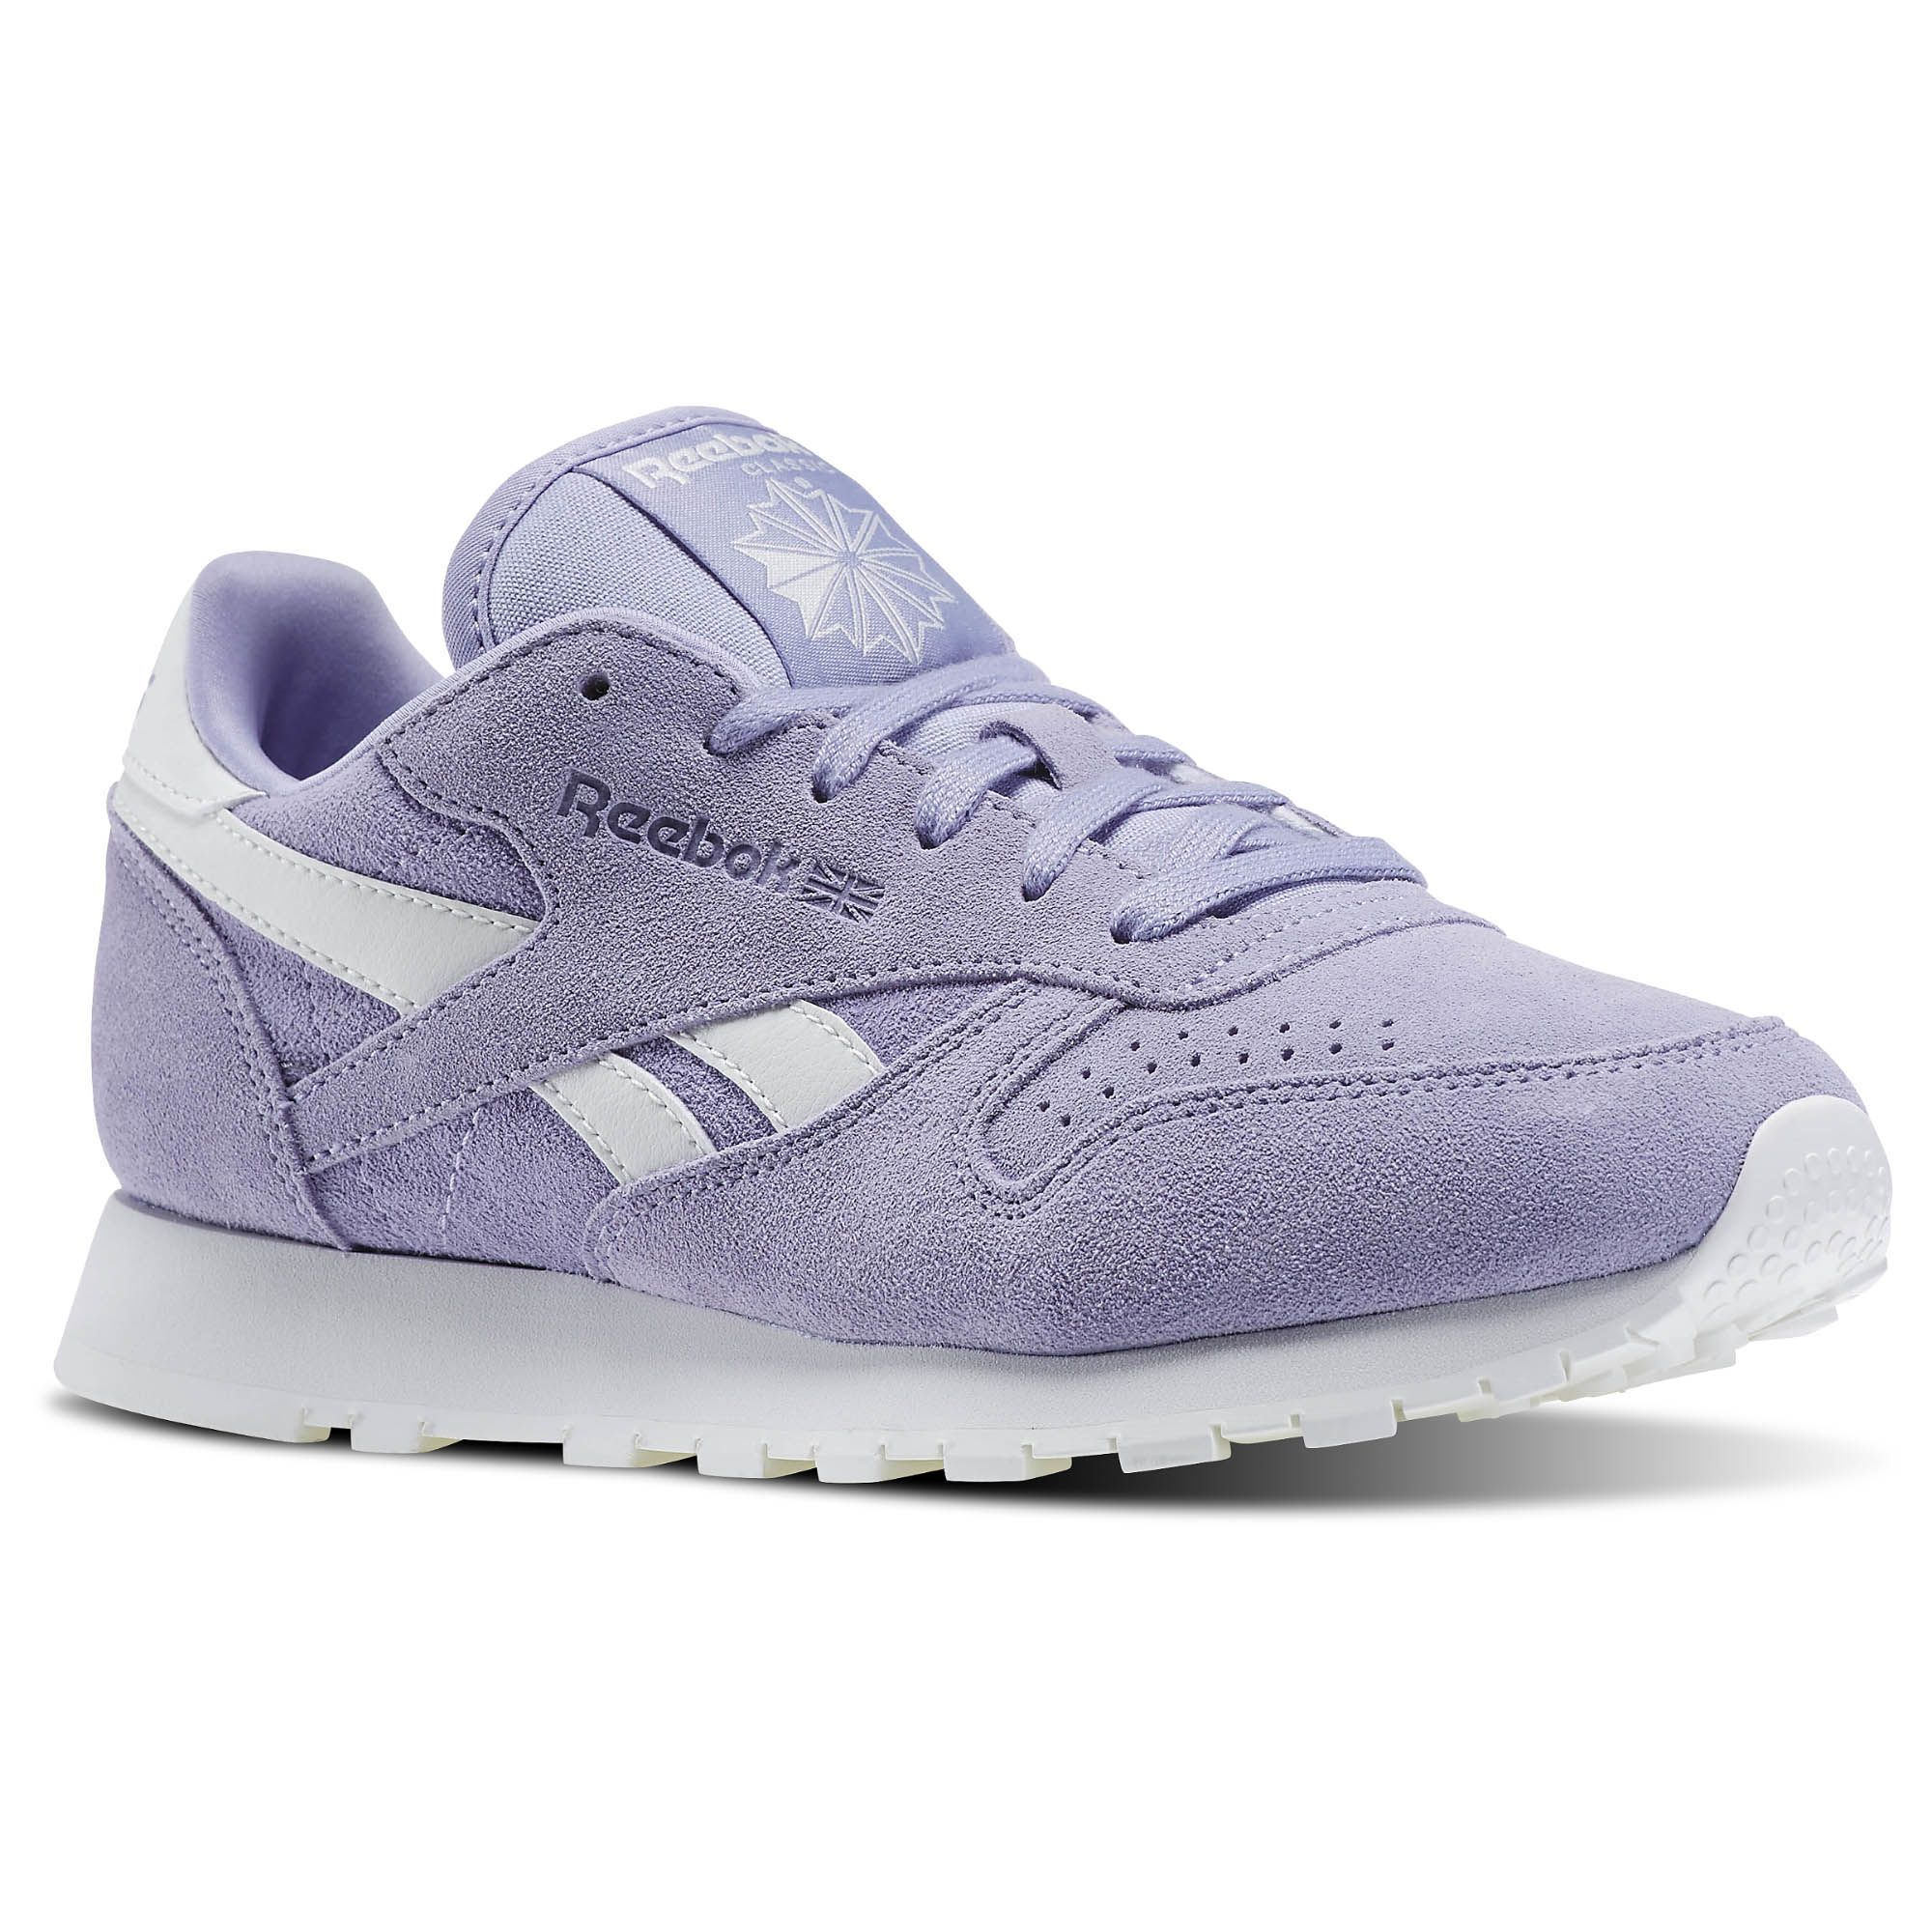 7262883bc0716 Reebok - Classic Leather Suede Core